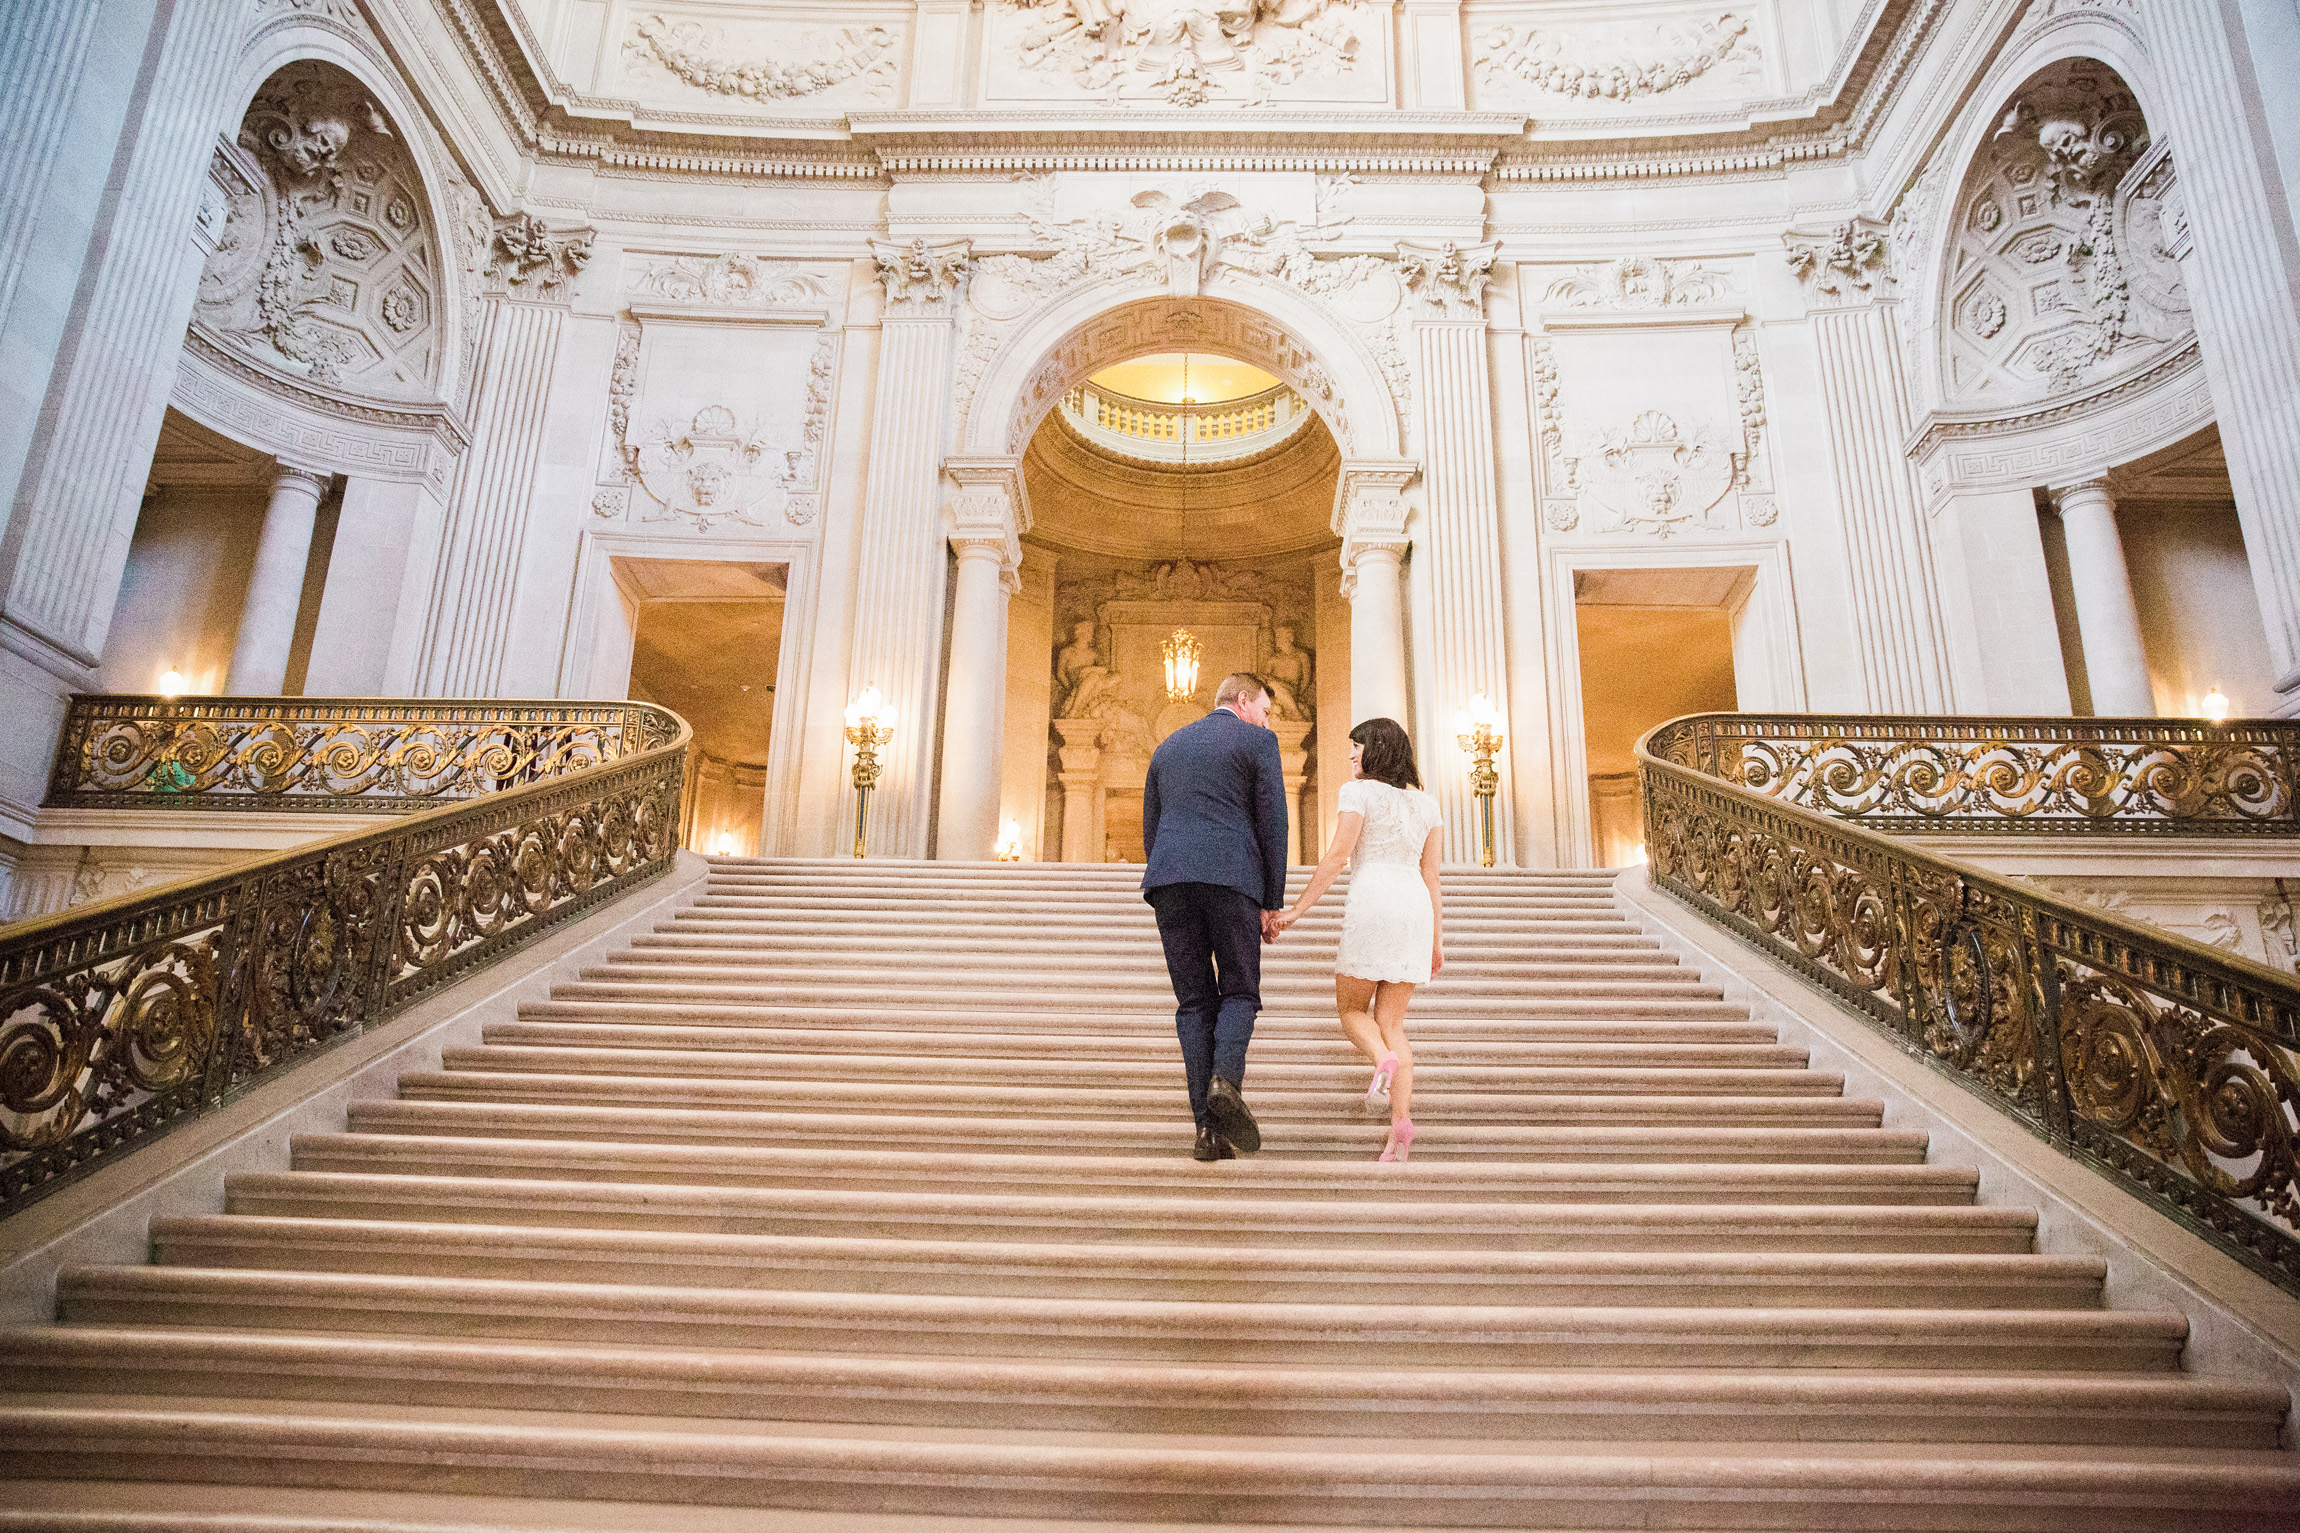 023_janaeshieldsphotography_sanfrancisco_cityhall_weddings.jpg